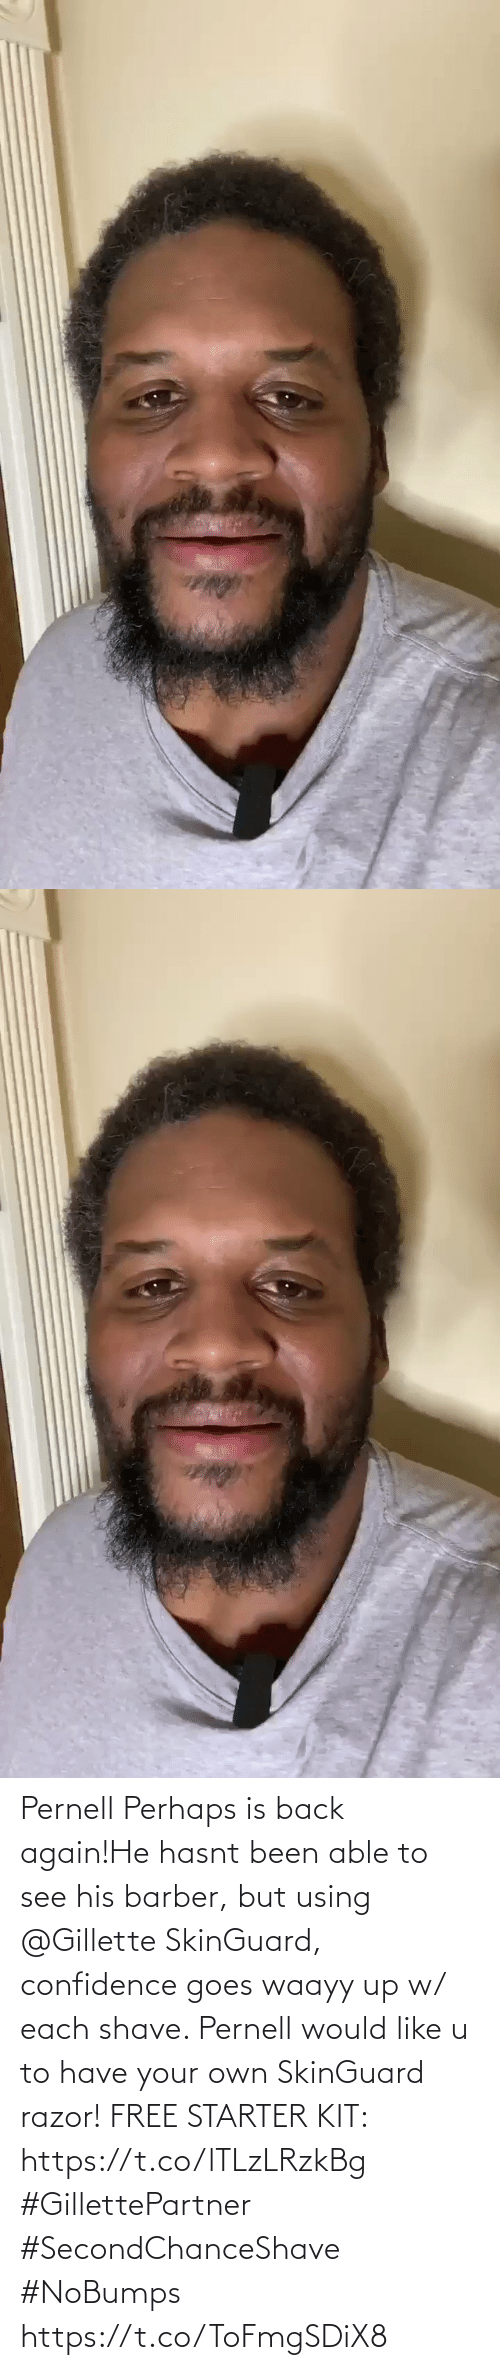 Barber: Pernell Perhaps is back again!He hasnt been able to see his barber, but using @Gillette SkinGuard, confidence goes waayy up w/ each shave. Pernell would like u to have your own SkinGuard razor! FREE STARTER KIT: https://t.co/lTLzLRzkBg #GillettePartner #SecondChanceShave #NoBumps https://t.co/ToFmgSDiX8